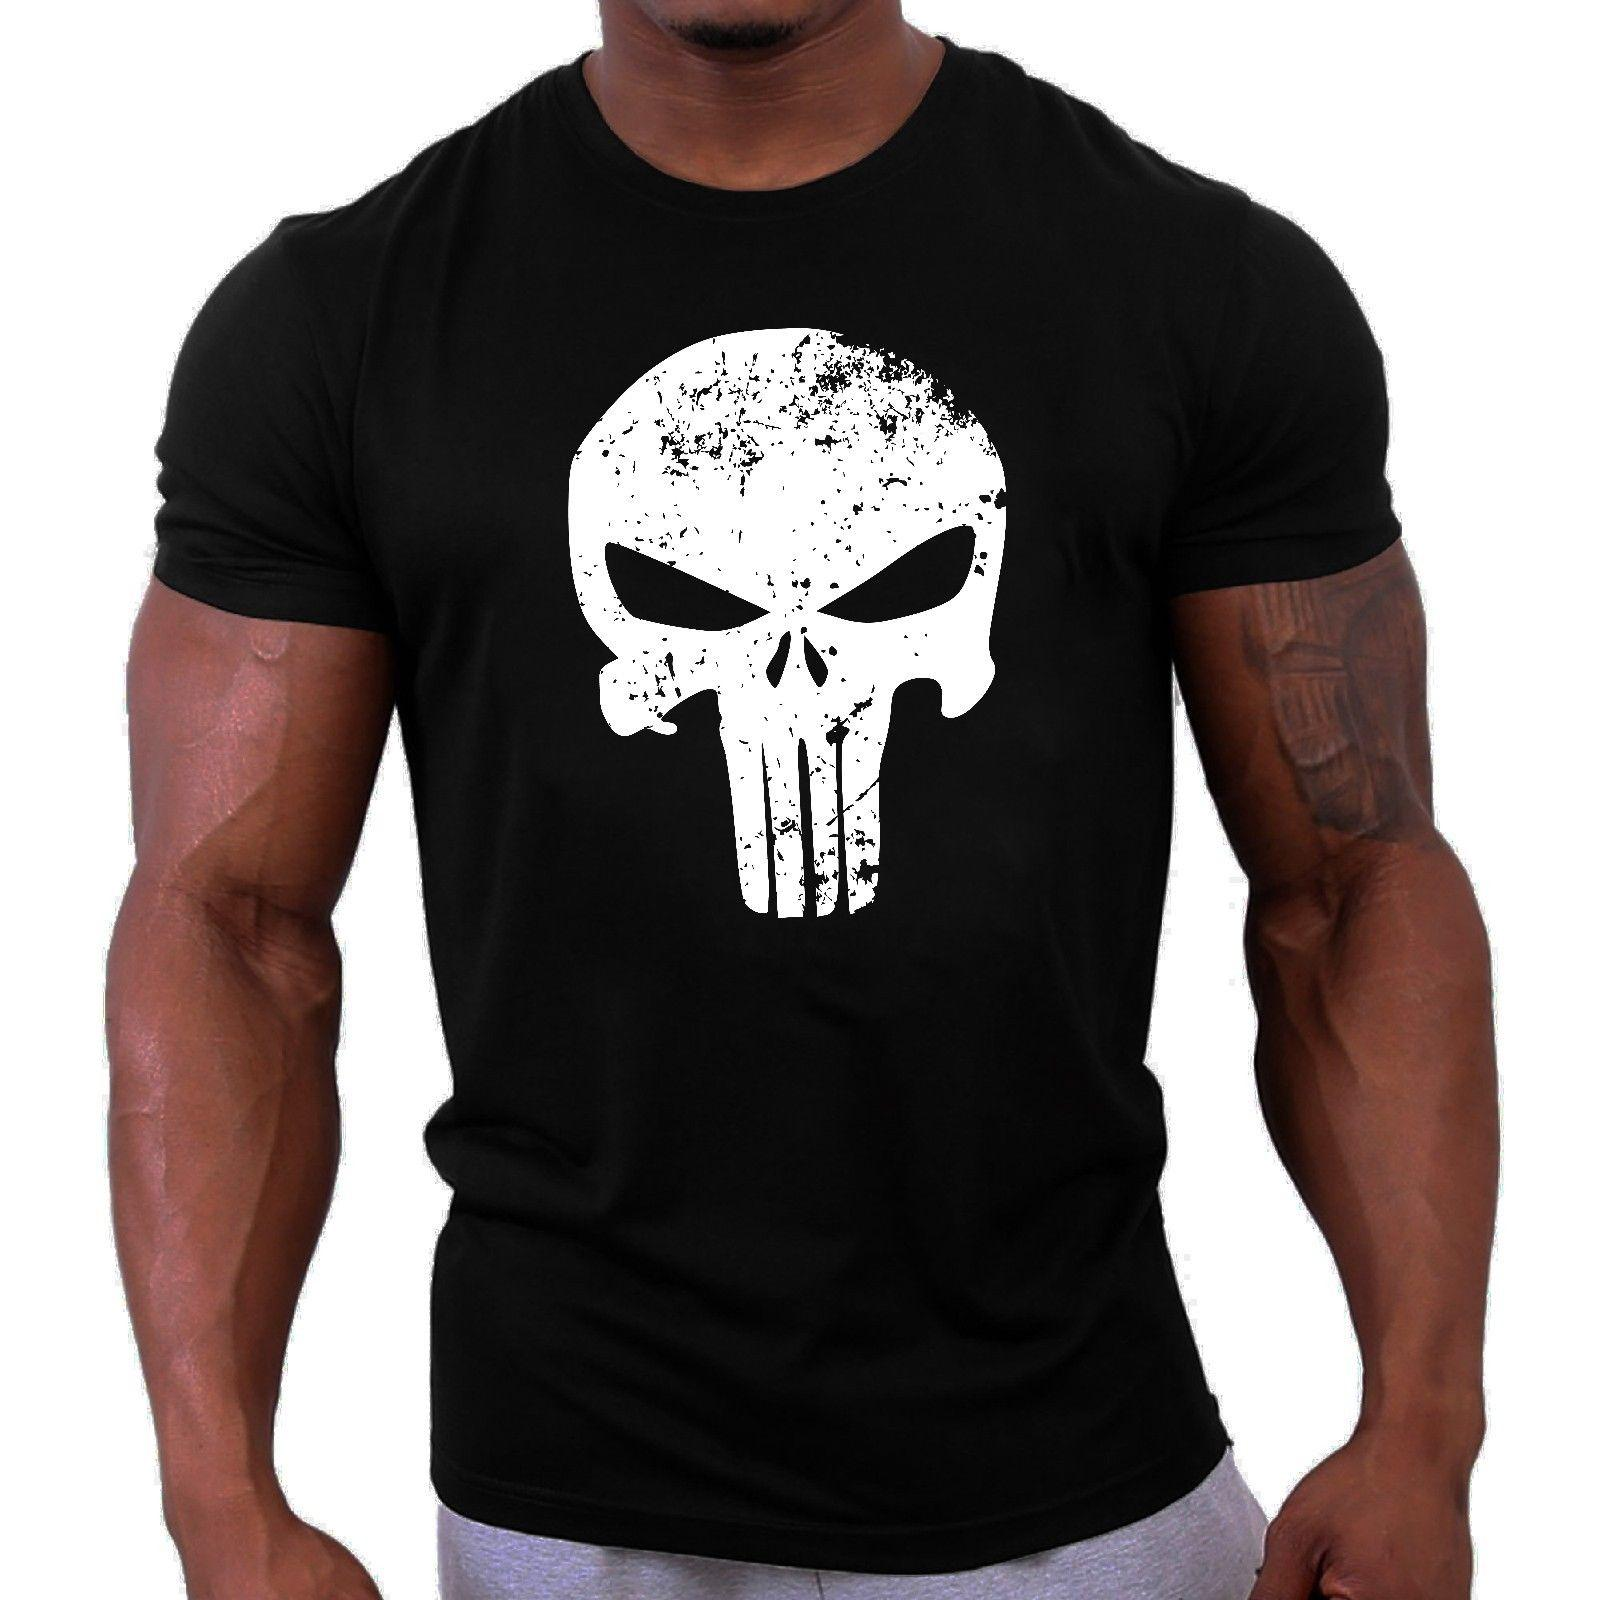 2445cd98a8e1b Punisher T Shirt Black Traininger Gymer Runer Workout Fighting Short Sleeve  Runing Cotton Low Price For Teen Boys